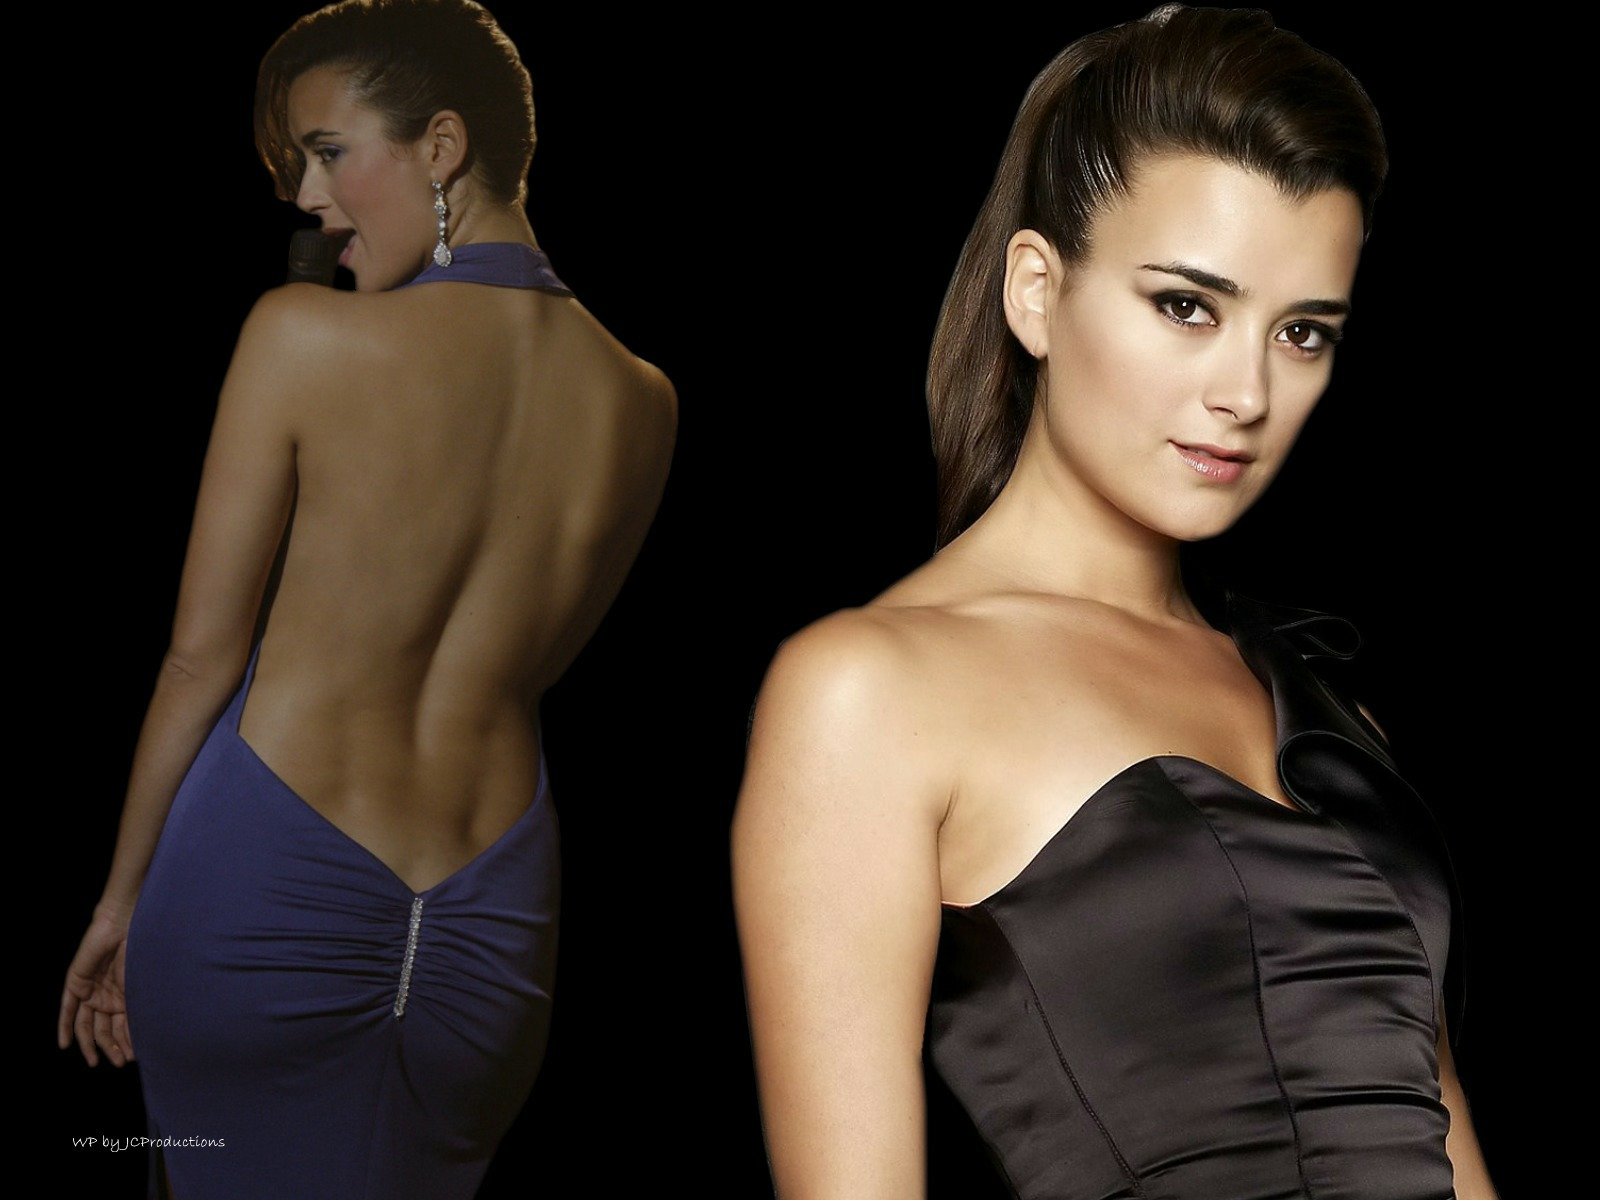 Download HQ NCIS, Ziva David, Blue Dress, Bare Back Cote de Pablo wallpaper